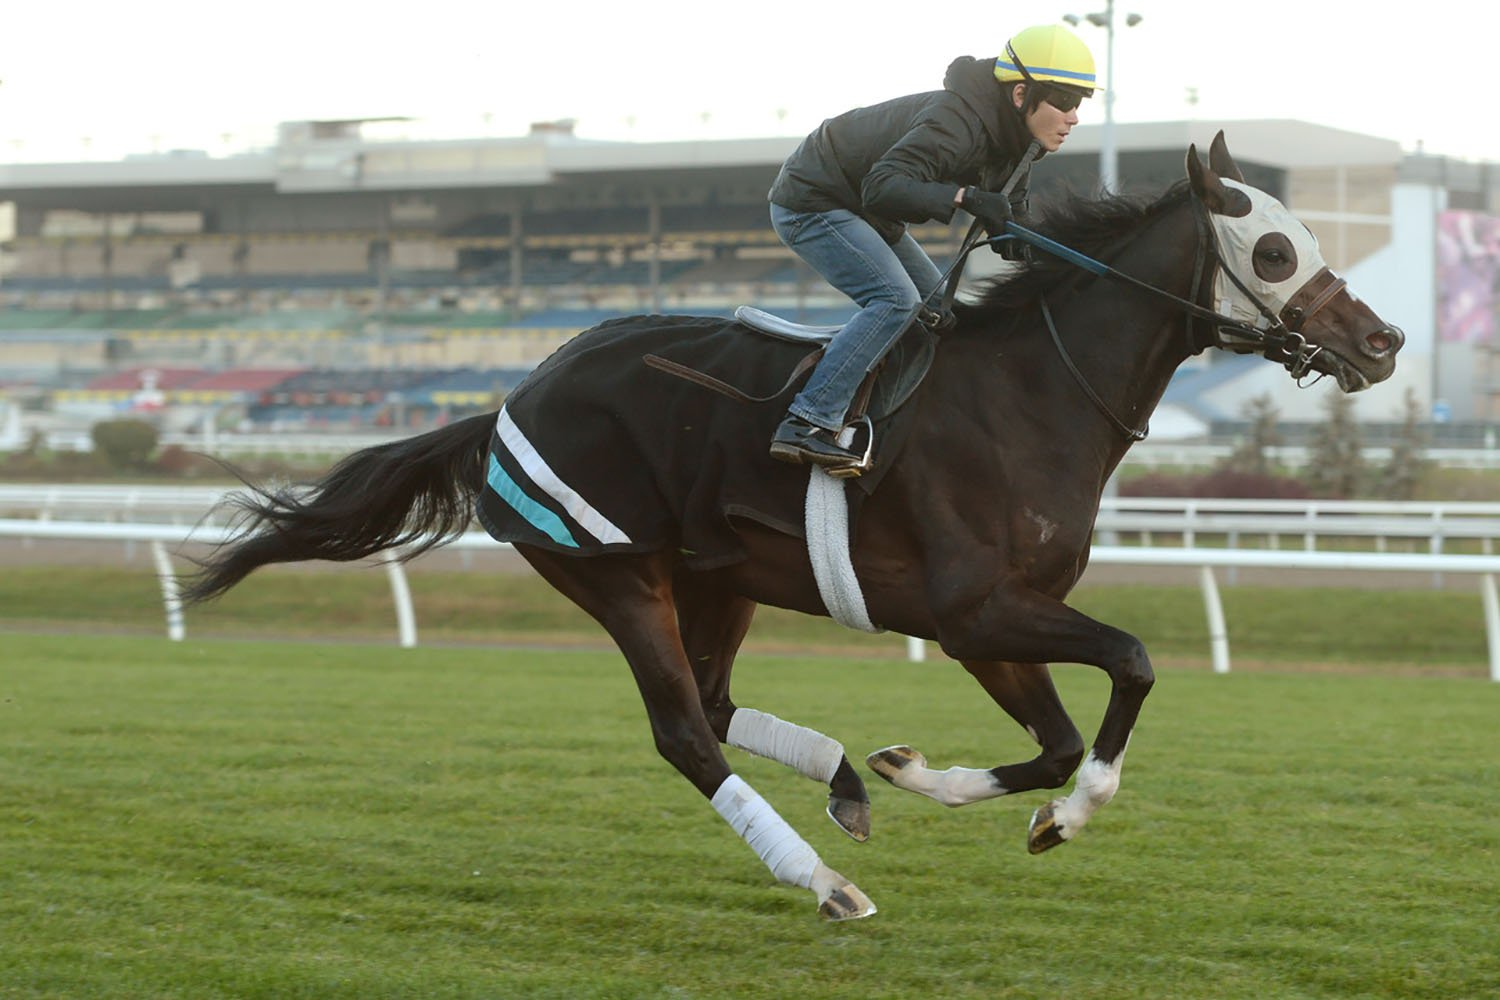 Breeders' Stakes favourite Mighty Heart breezing at Woodbine Racetrack with jockey Daisuke Fukumoto in advance of the final leg of the OLG Canadian Triple Crown. (Michael Burns Photo)